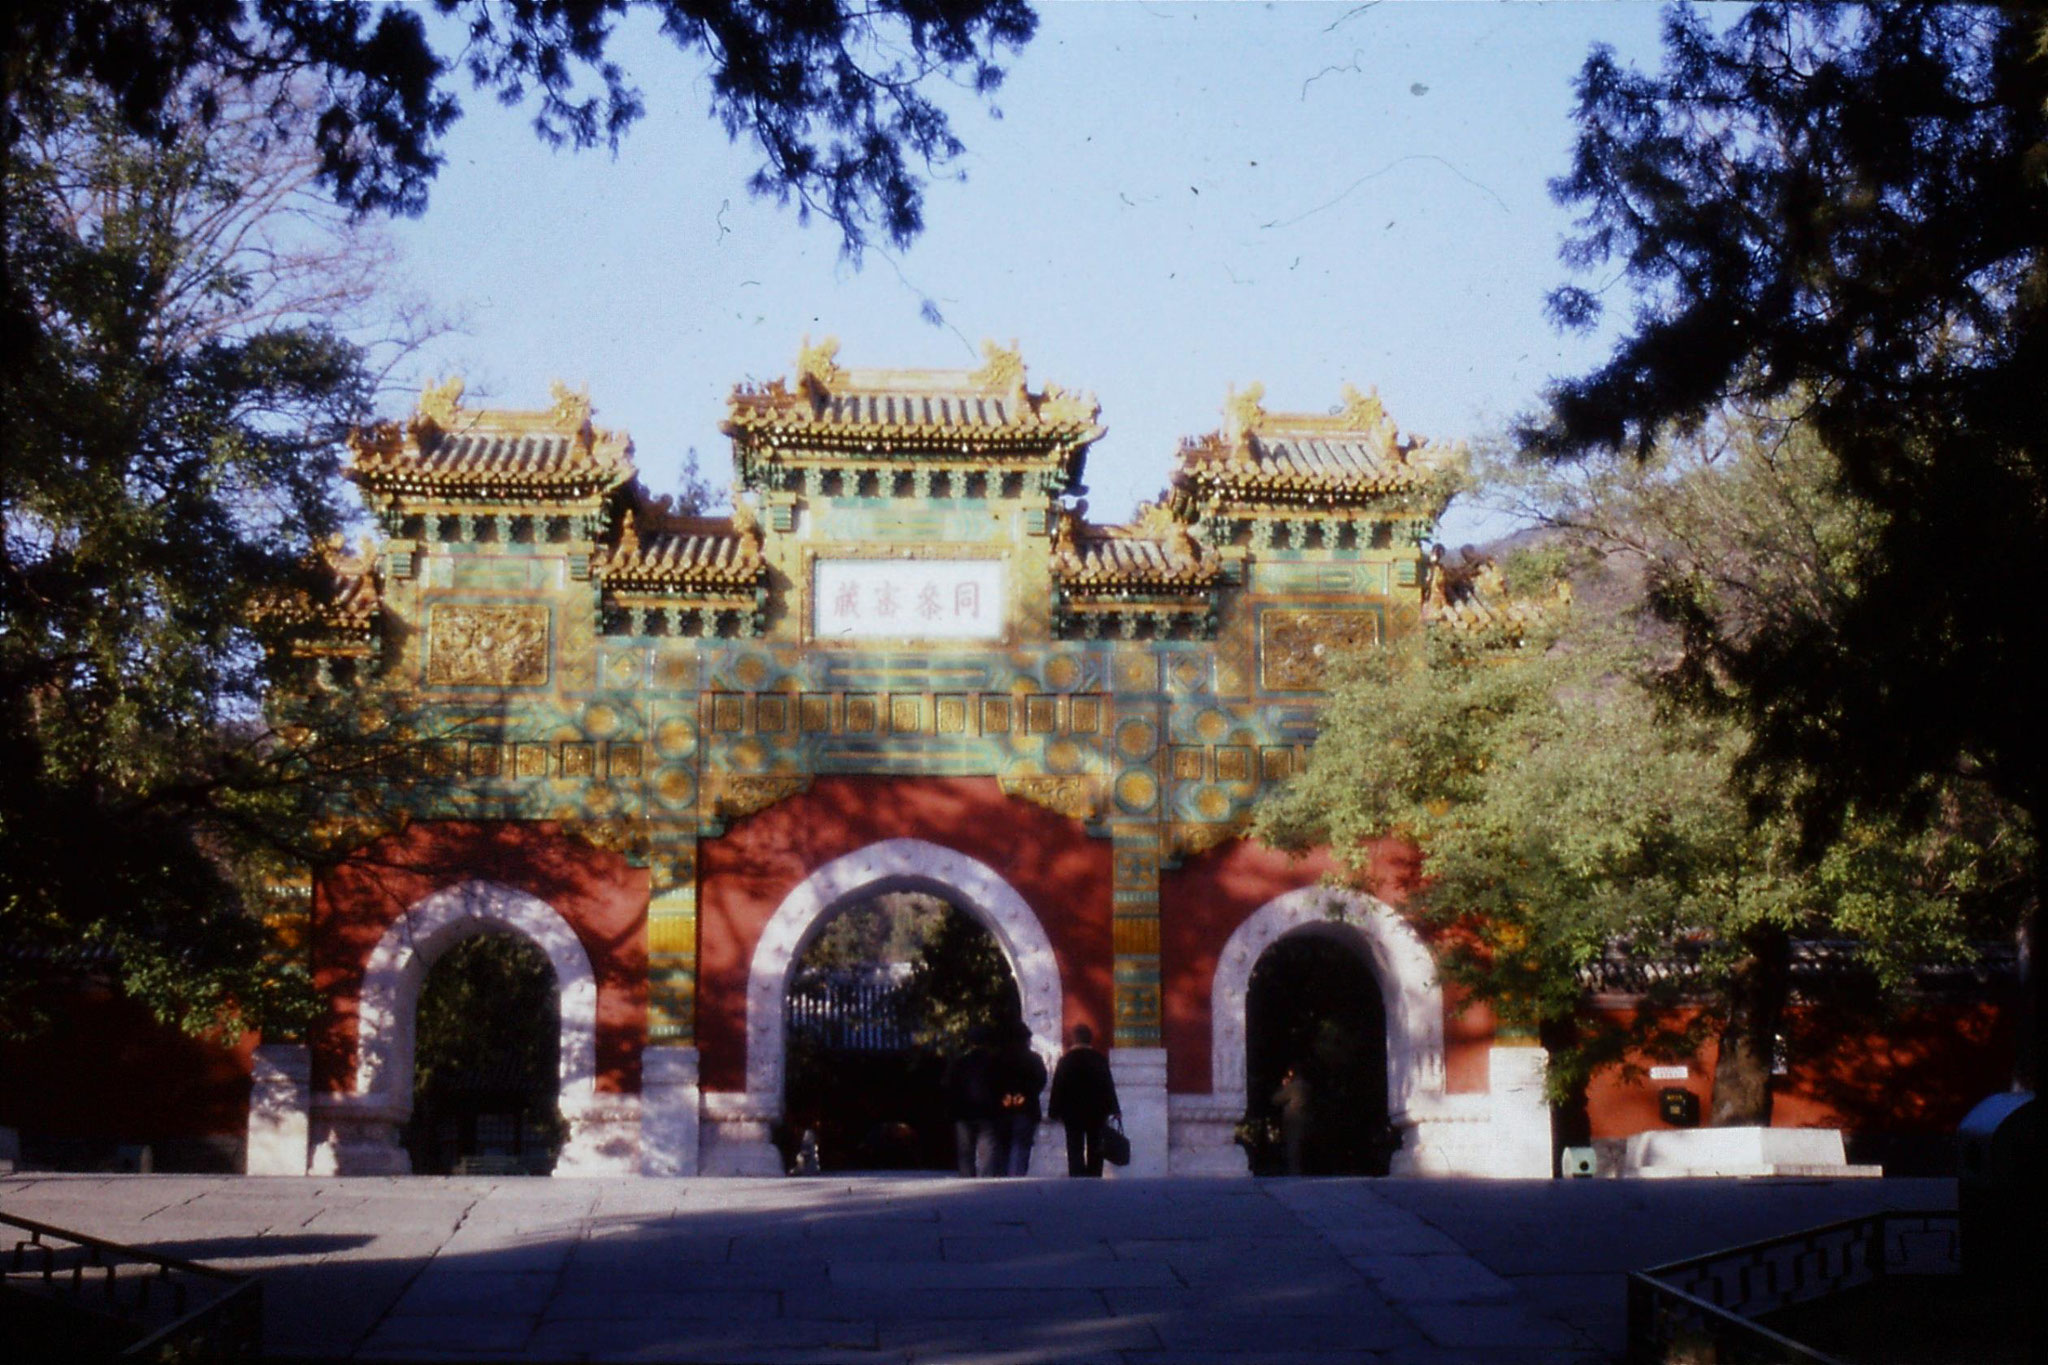 24/11/1988: 1: Xianshan Temple of Sleeping Buddha